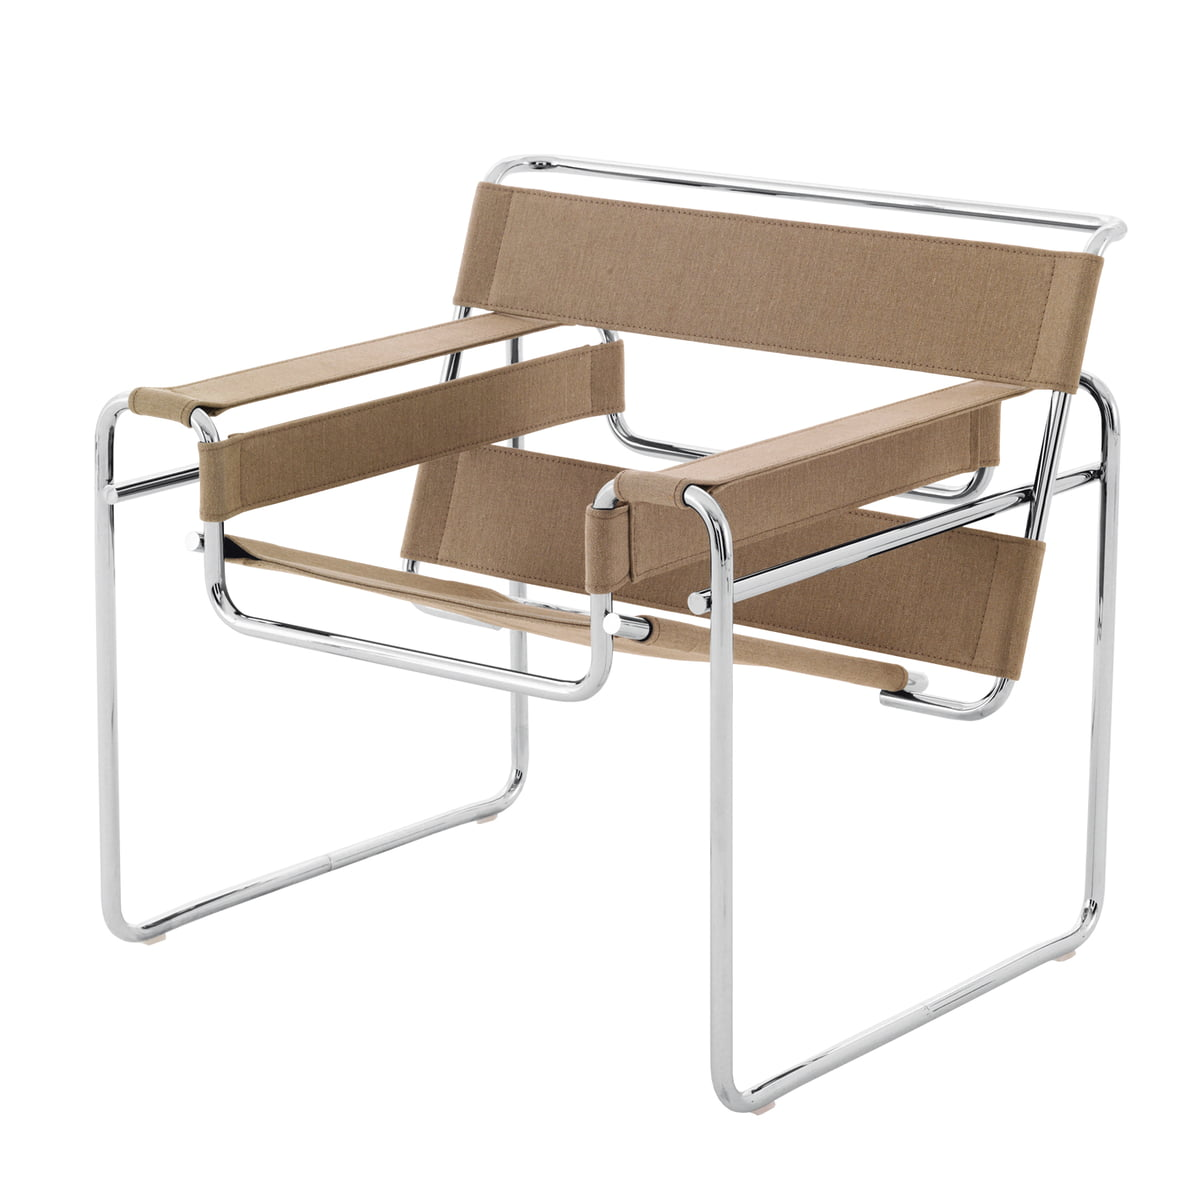 Knoll wassily segeltuch im wohndesign shop for Wohndesign shop